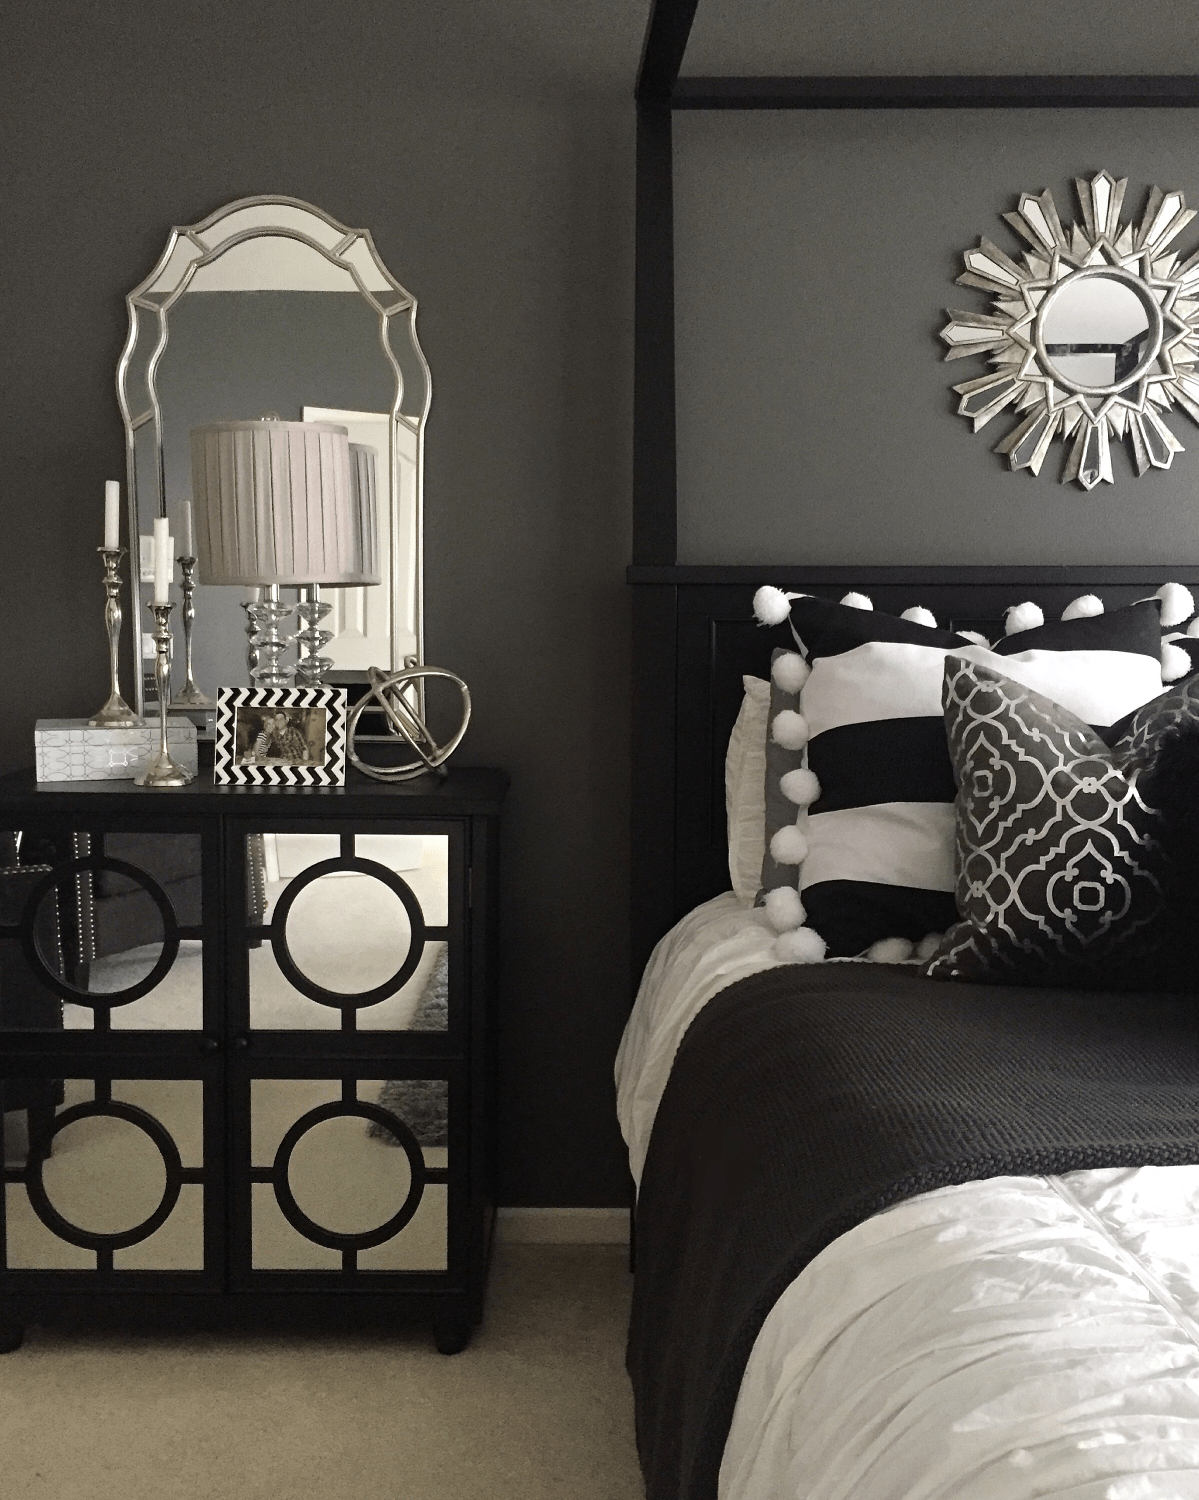 Glam Bedroom Inspiration Bedside Inspiration From Home Goods Mirrors Lamp